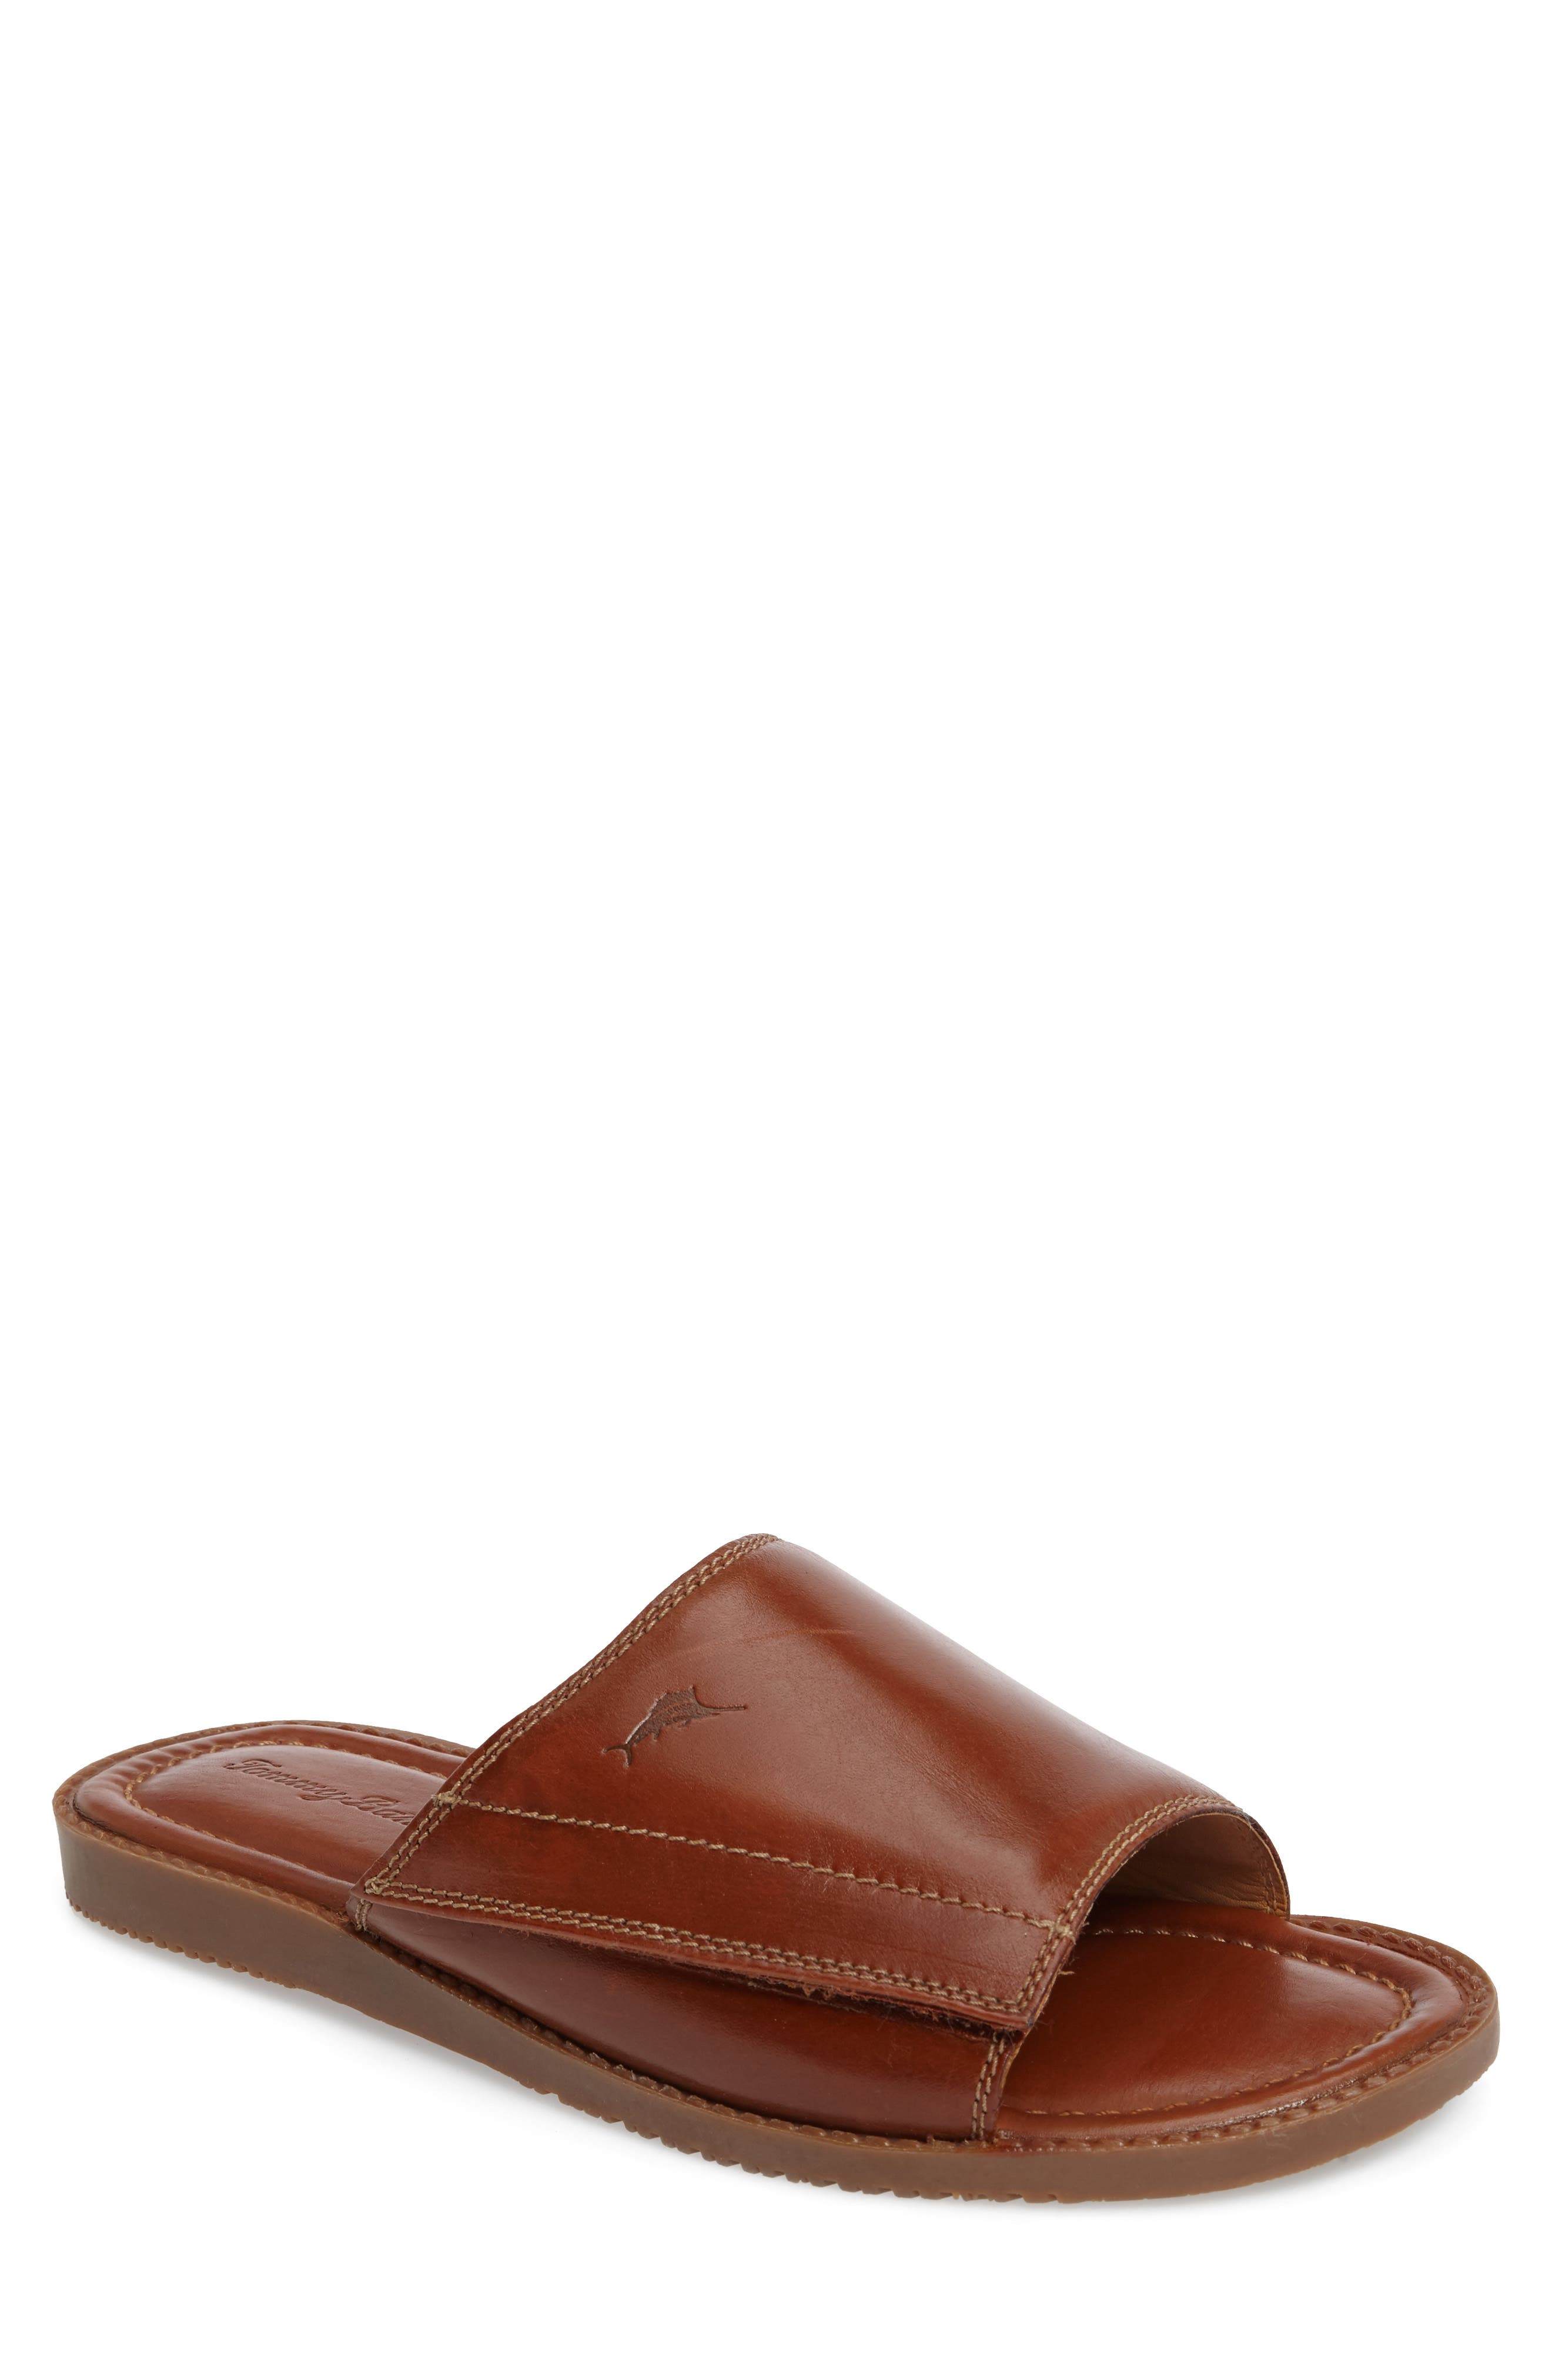 Tommy Bahama Anchors Wharf Slide Sandal (Men)